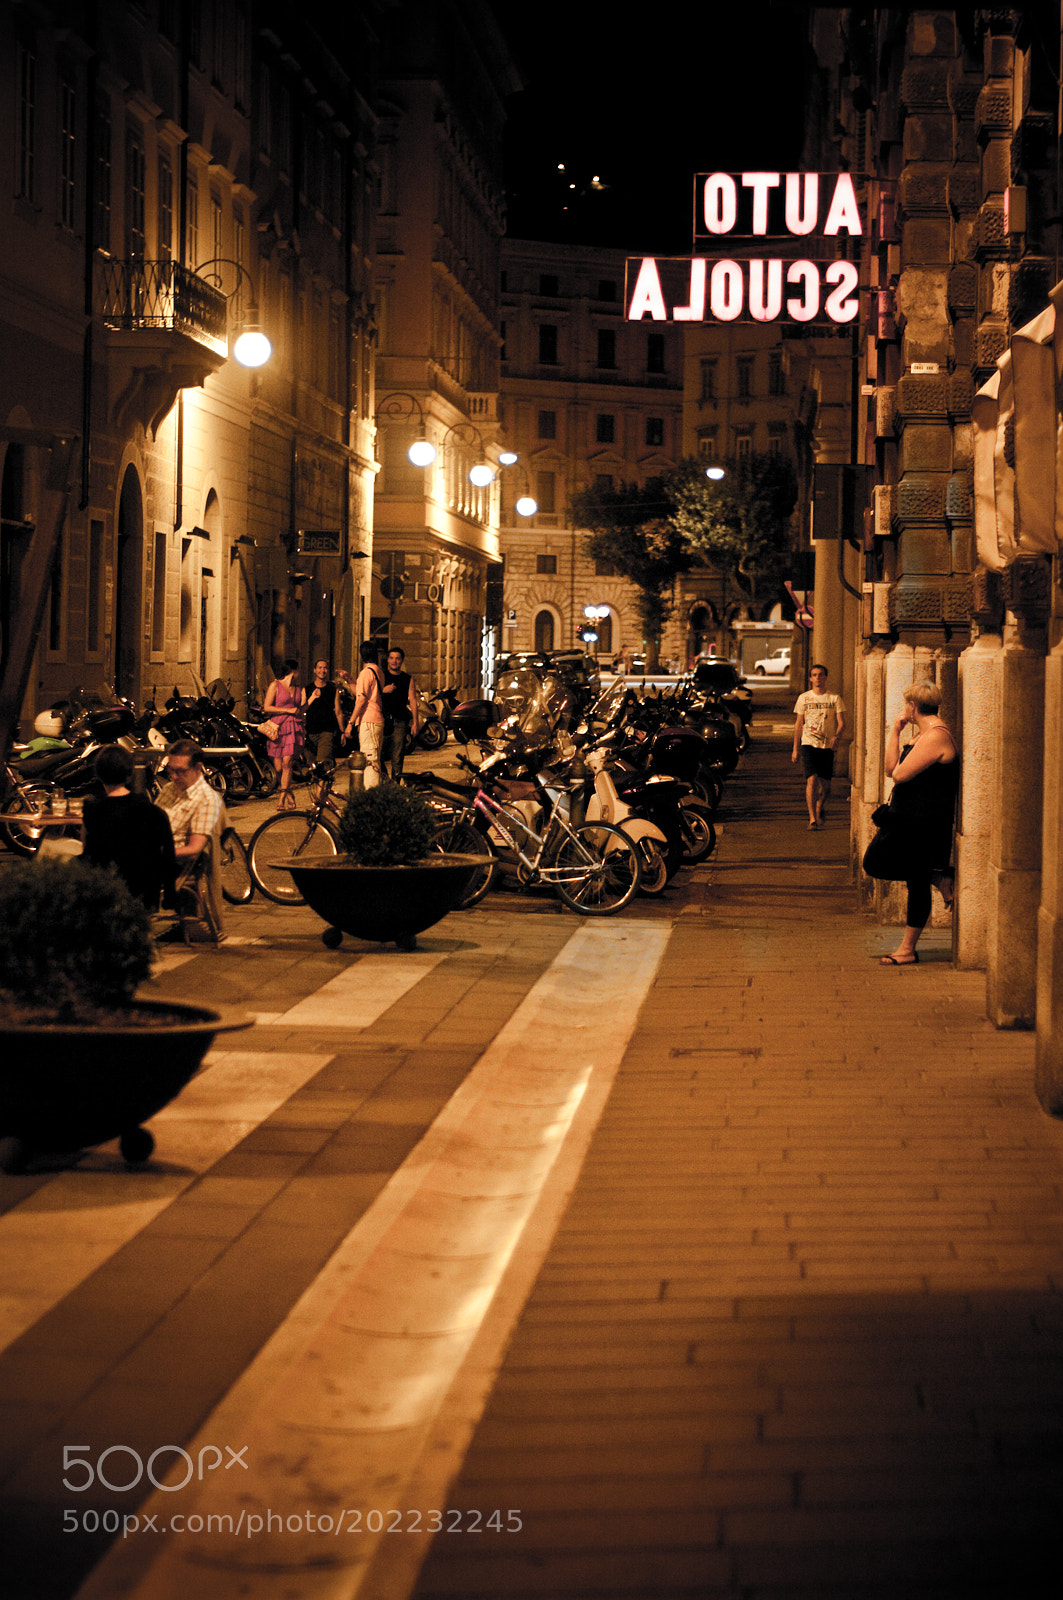 Trieste Street in Evening, Pentax K20D, smc PENTAX-F 50mm F1.7